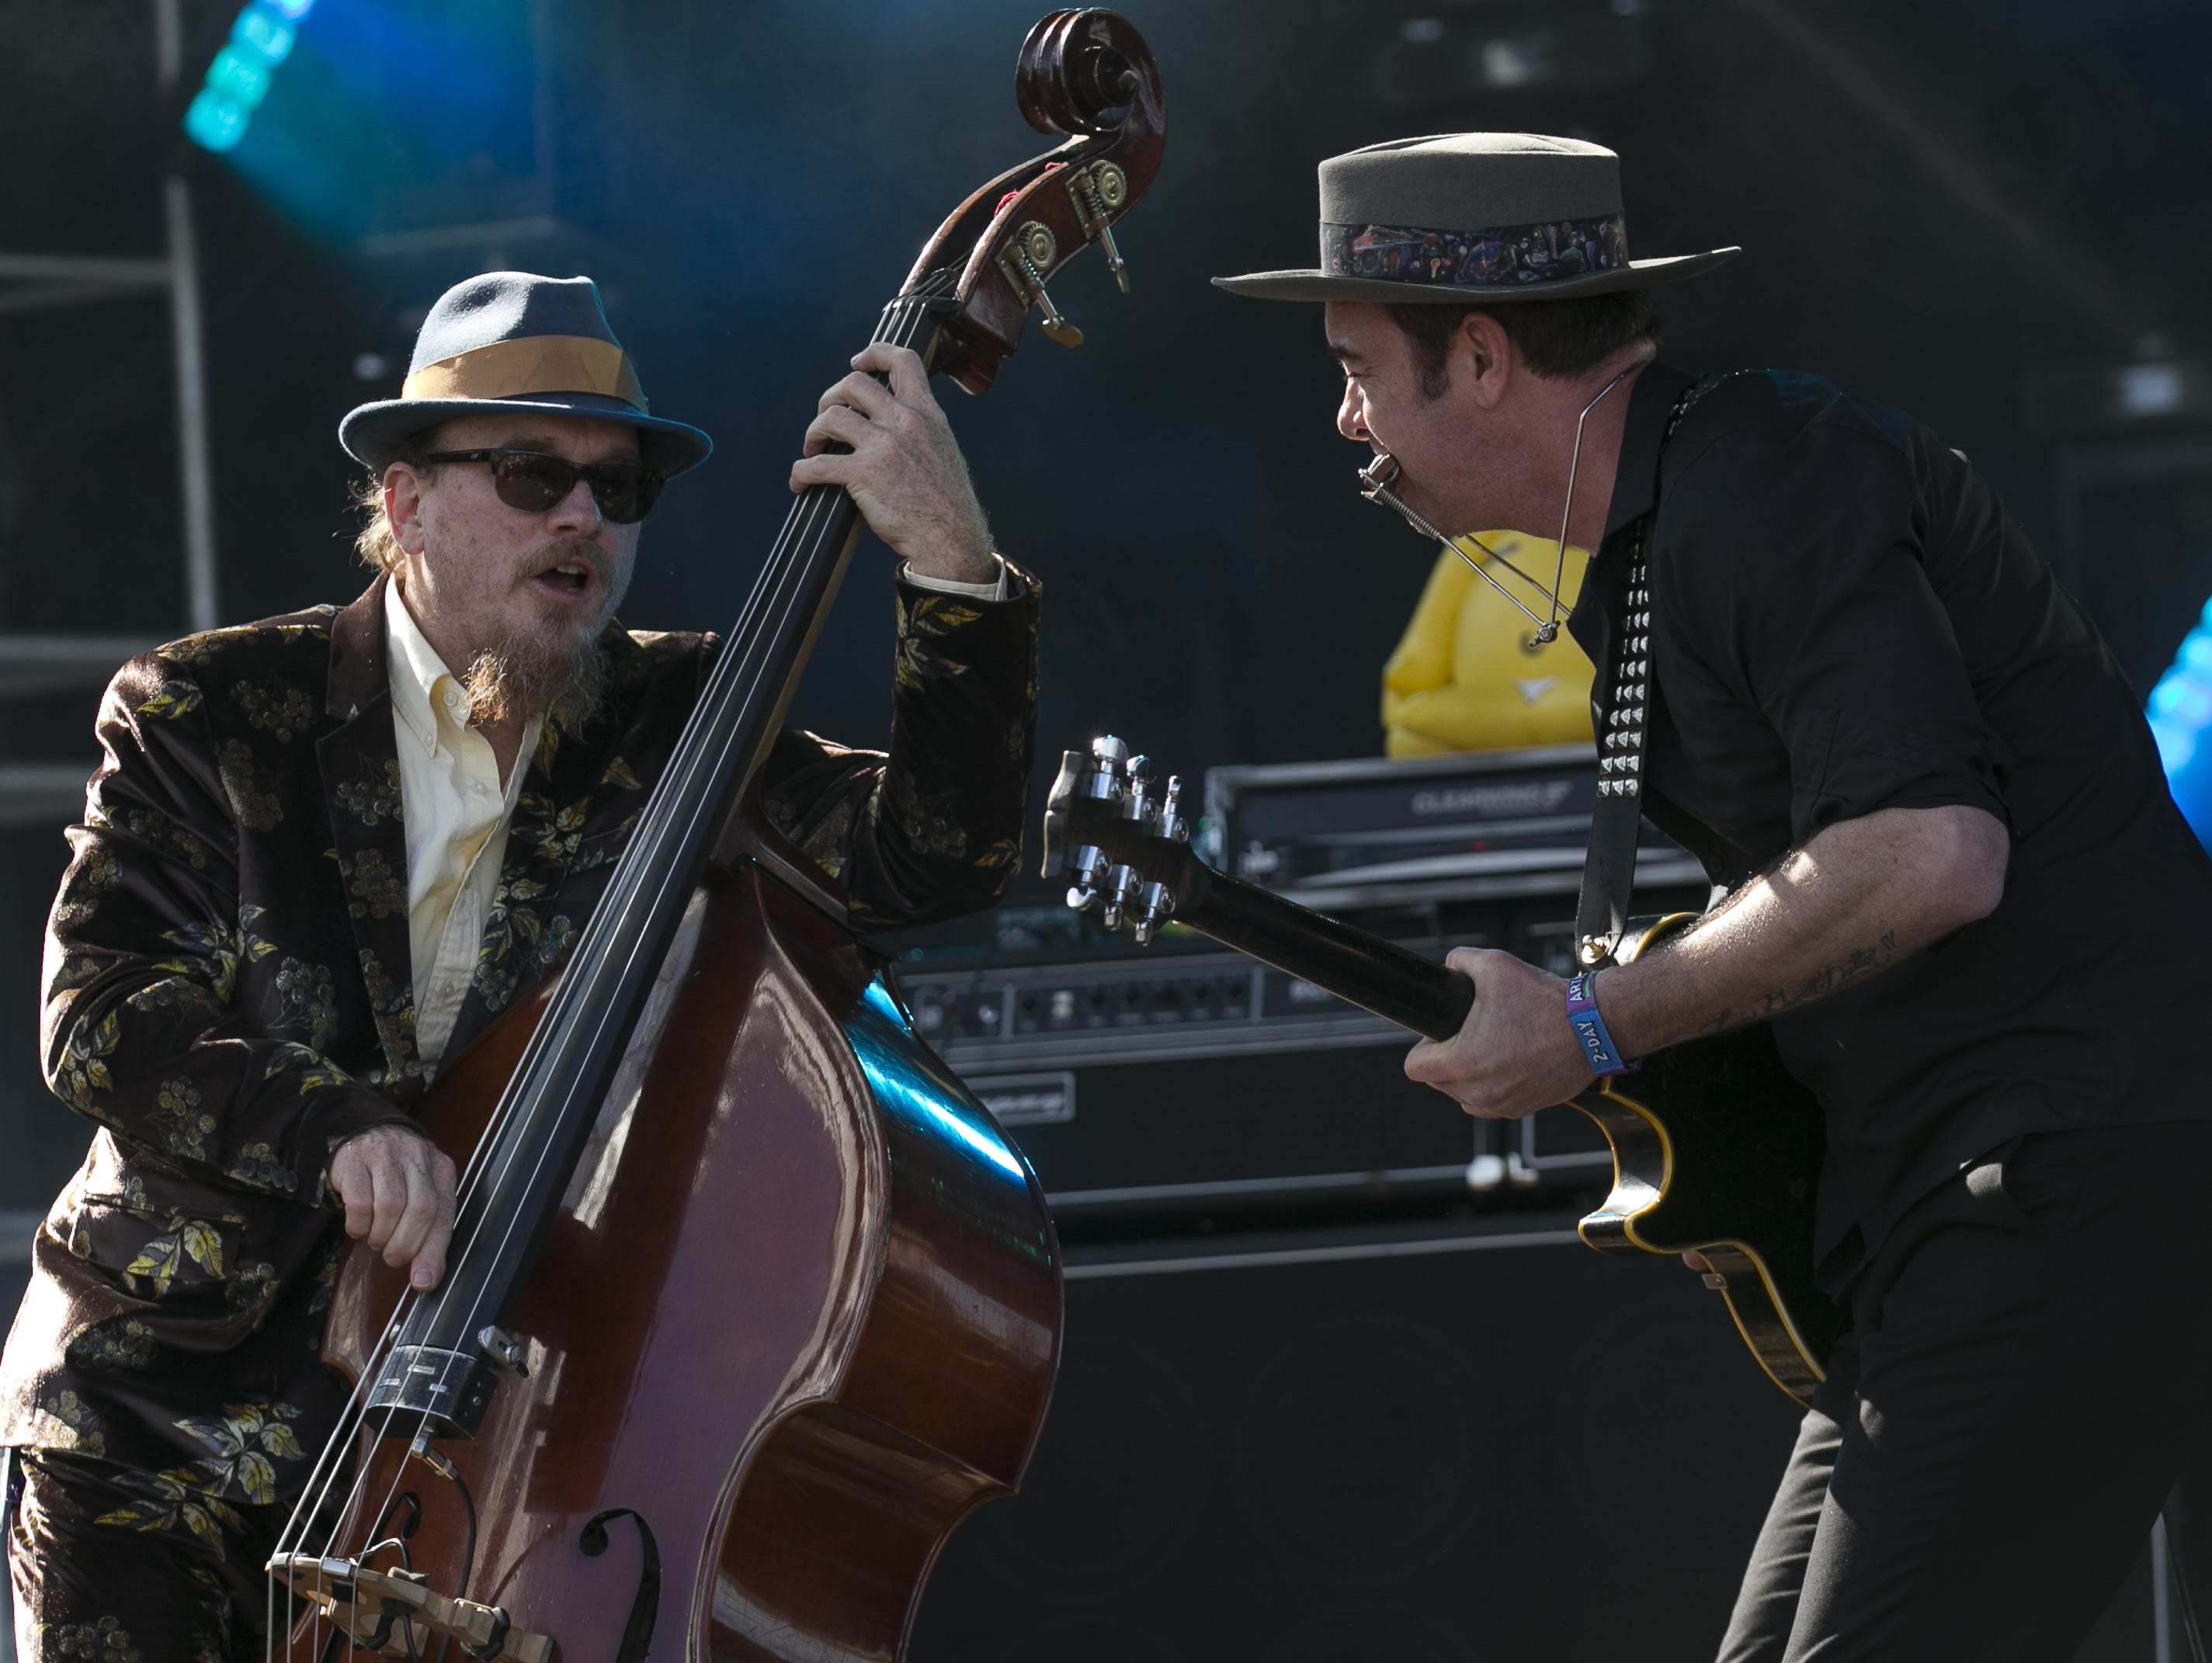 G Love & Special Sauce performs at the Innings Festival at Tempe Beach Park in Ariz. on Sunday, March 3, 2019.